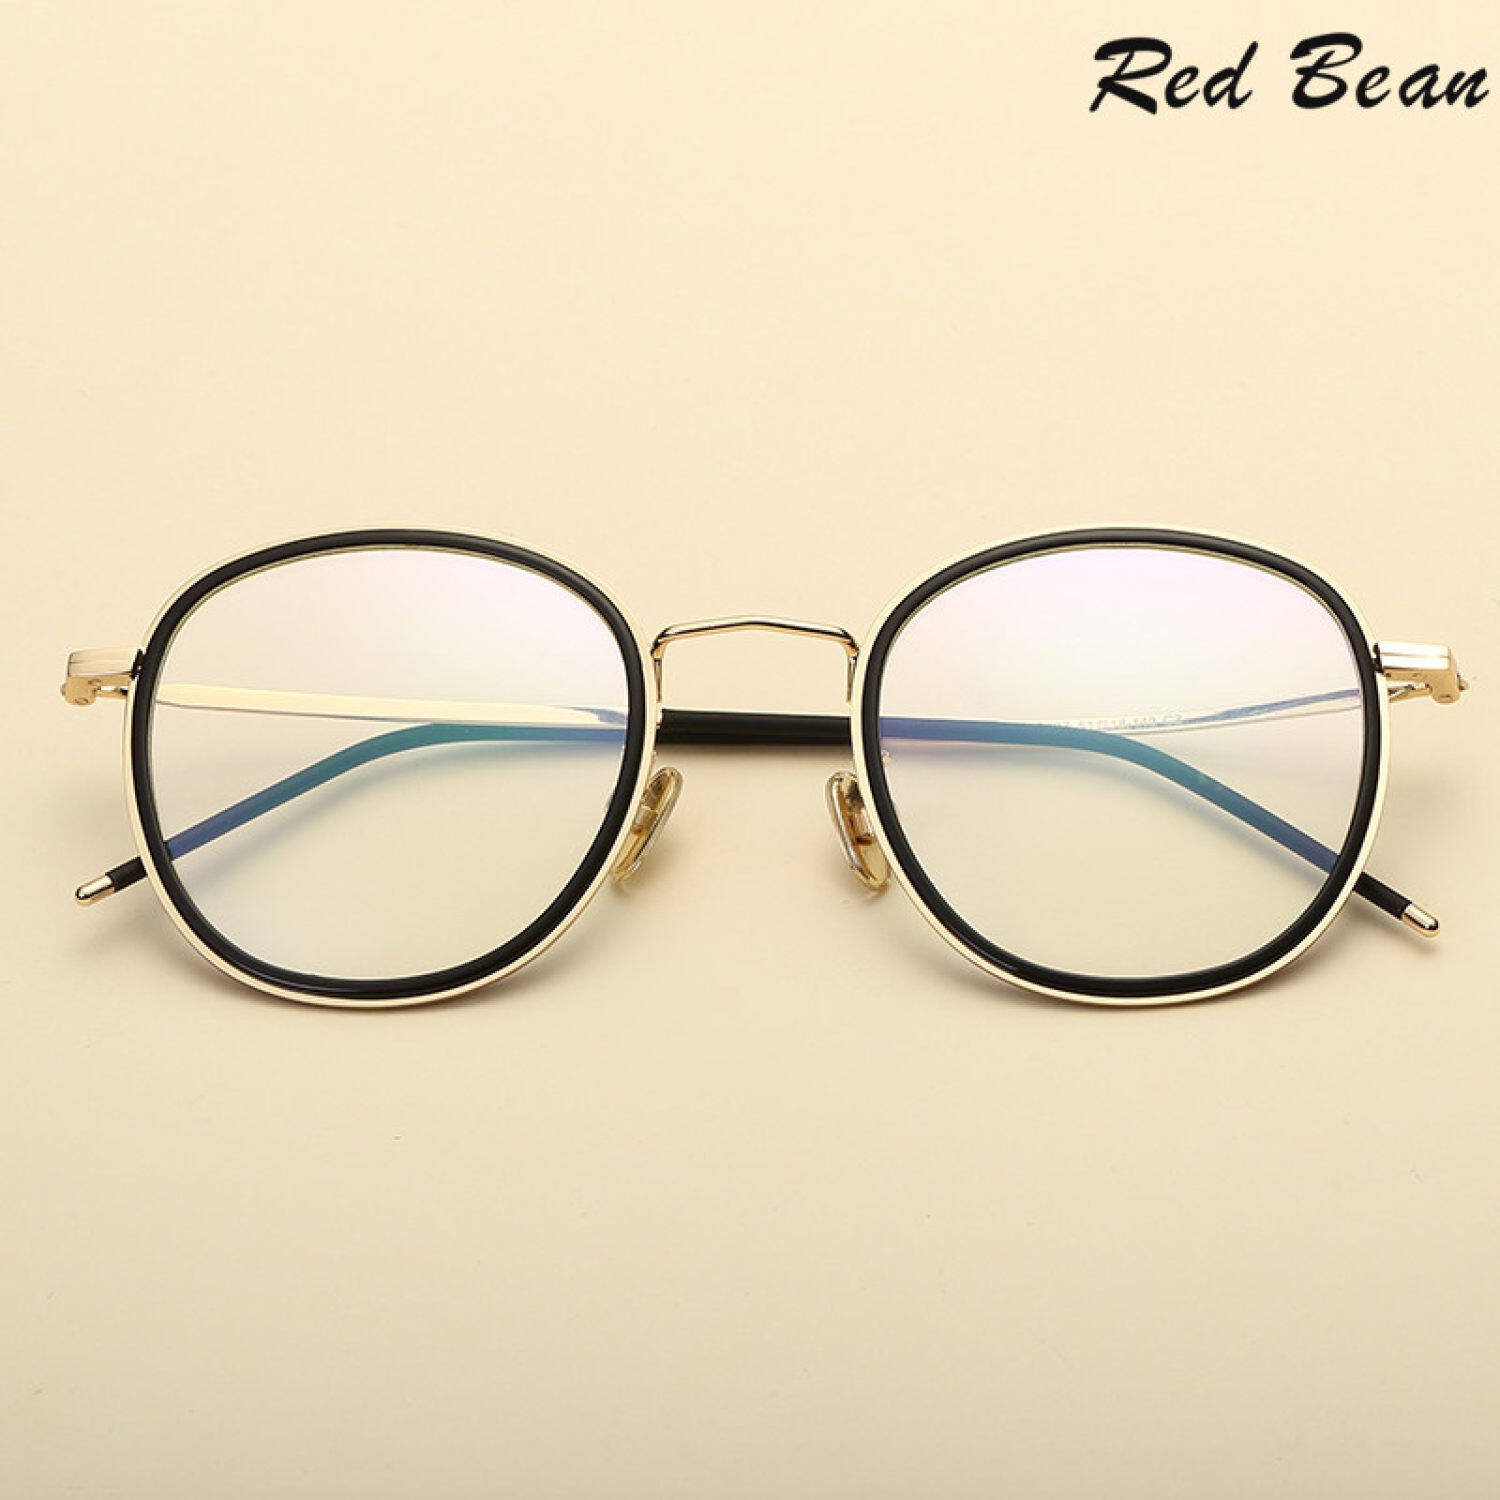 Yuxin Mall Korean version of the retro frame of men's art double ring glasses frame with myopia frames female tide round flat mirror wholesale